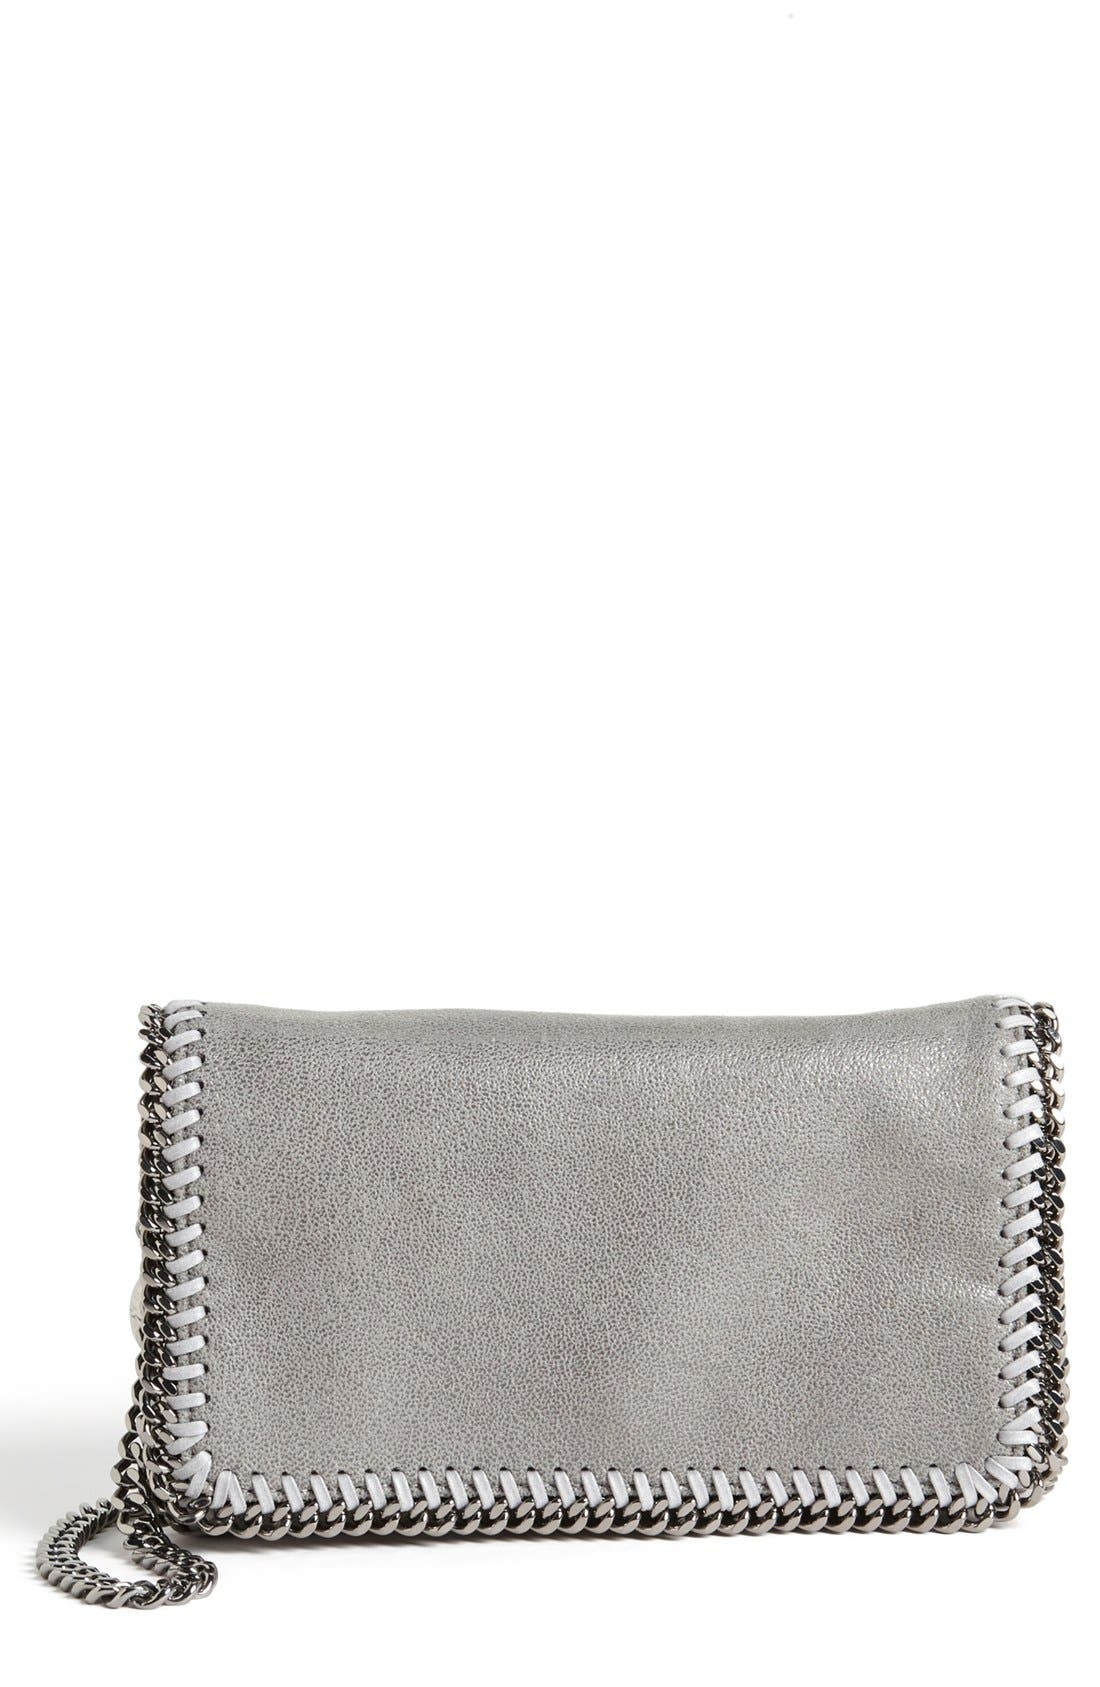 Alternate Image 1 Selected - Stella McCartney 'Falabella - Shaggy Deer' Faux Leather Crossbody Bag